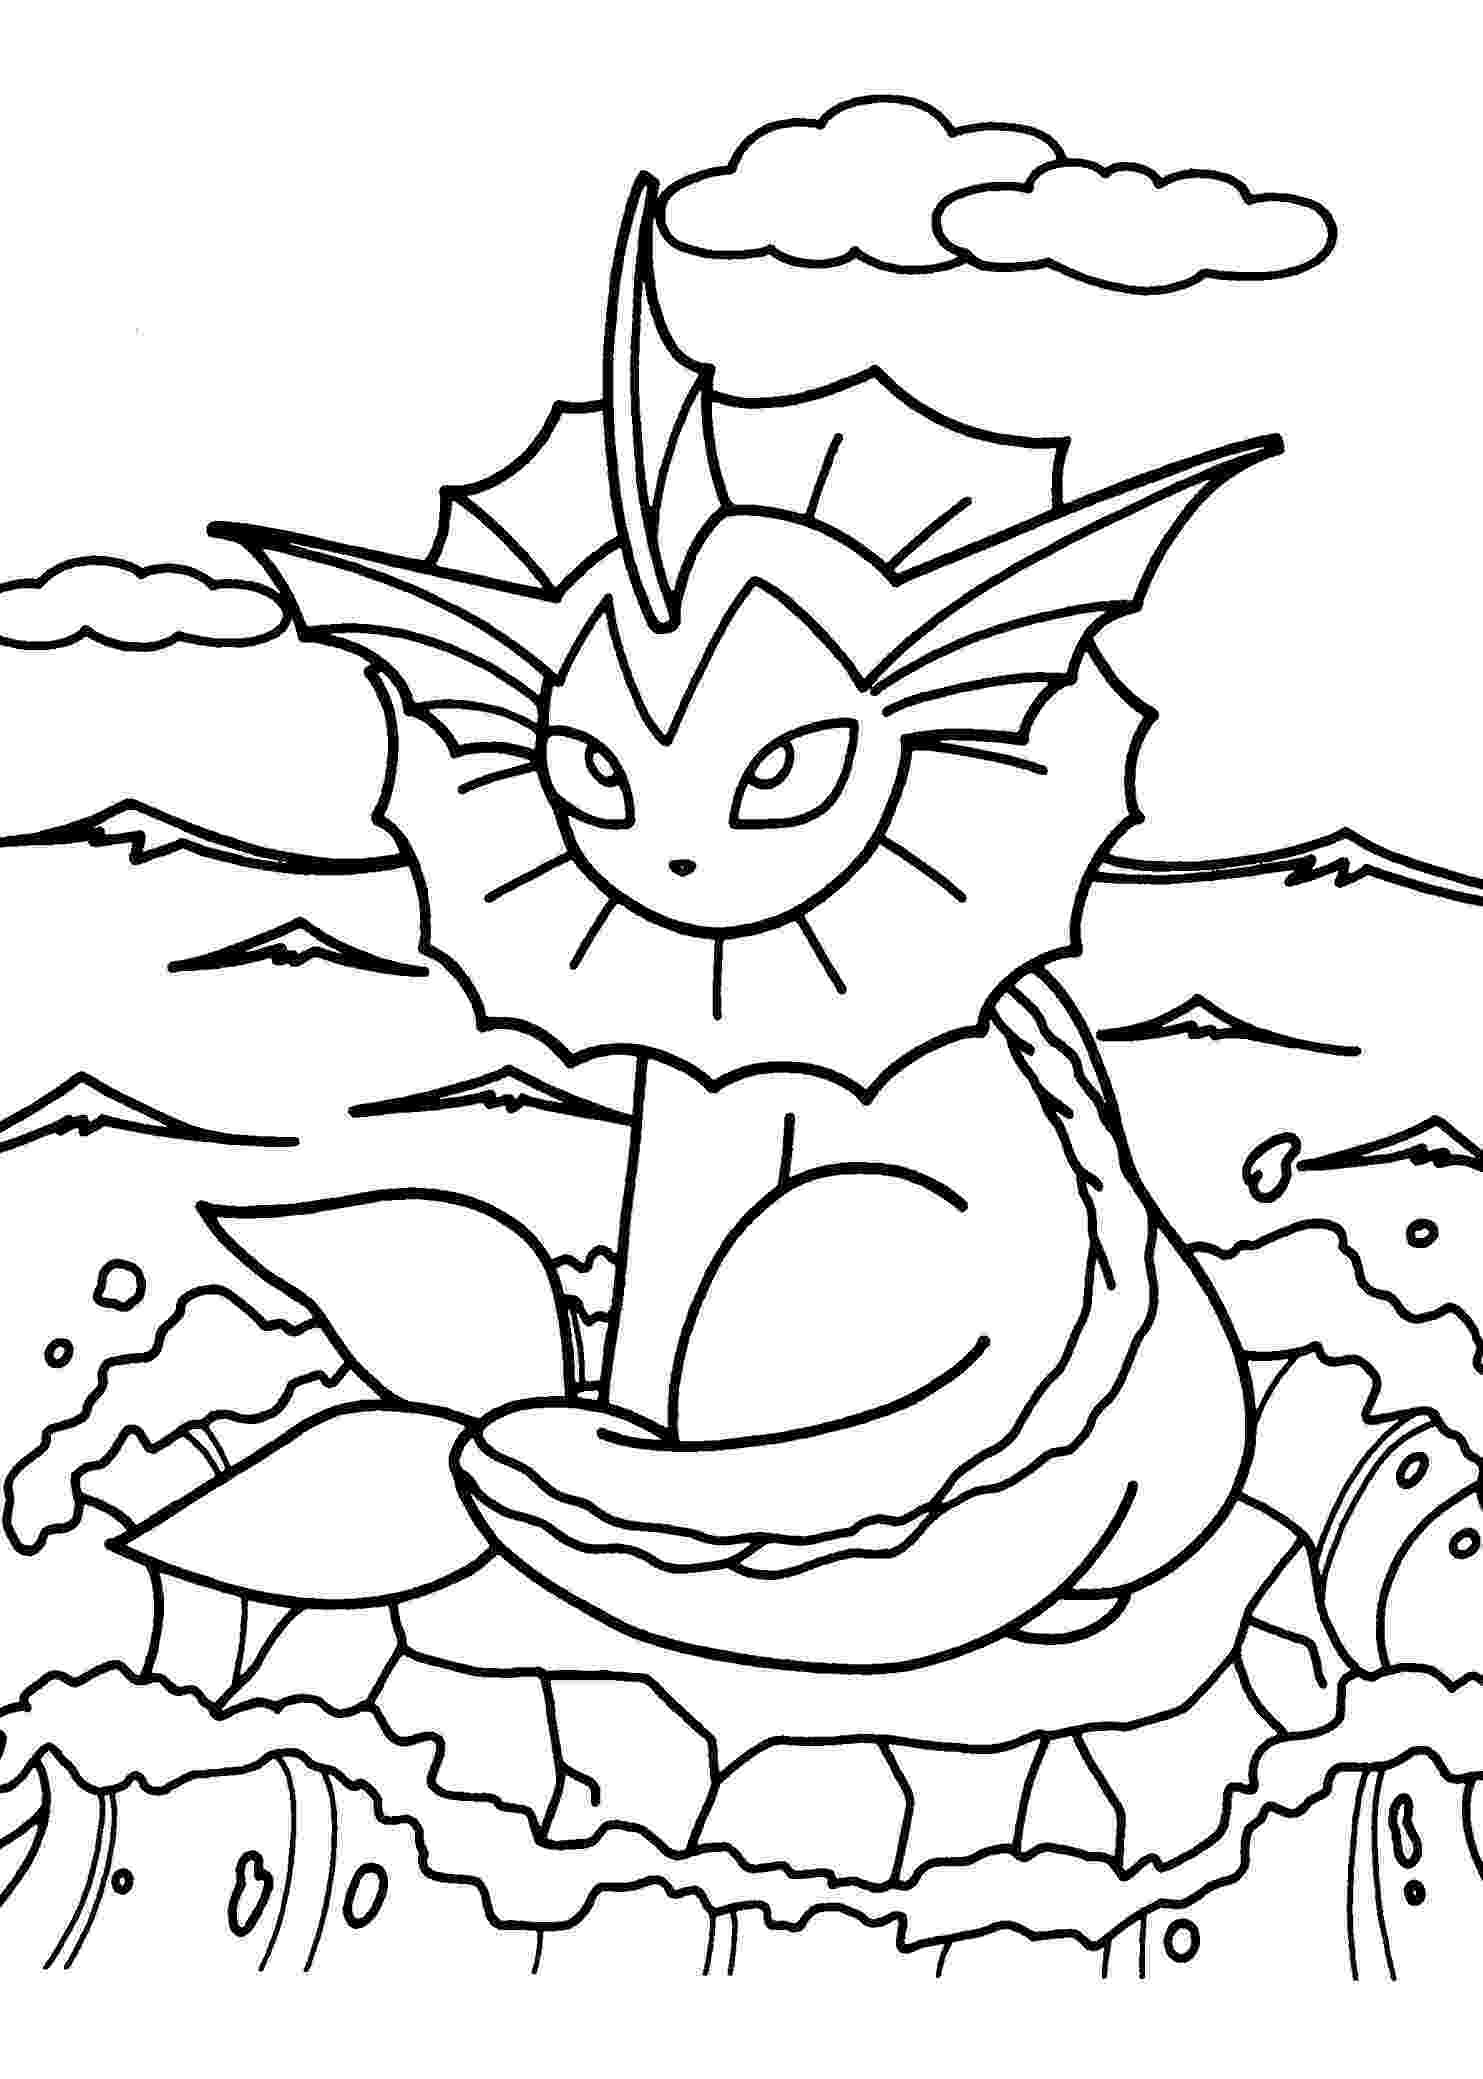 pokemon charizard coloring pages charizard pokemon coloring page free pokémon coloring coloring charizard pokemon pages